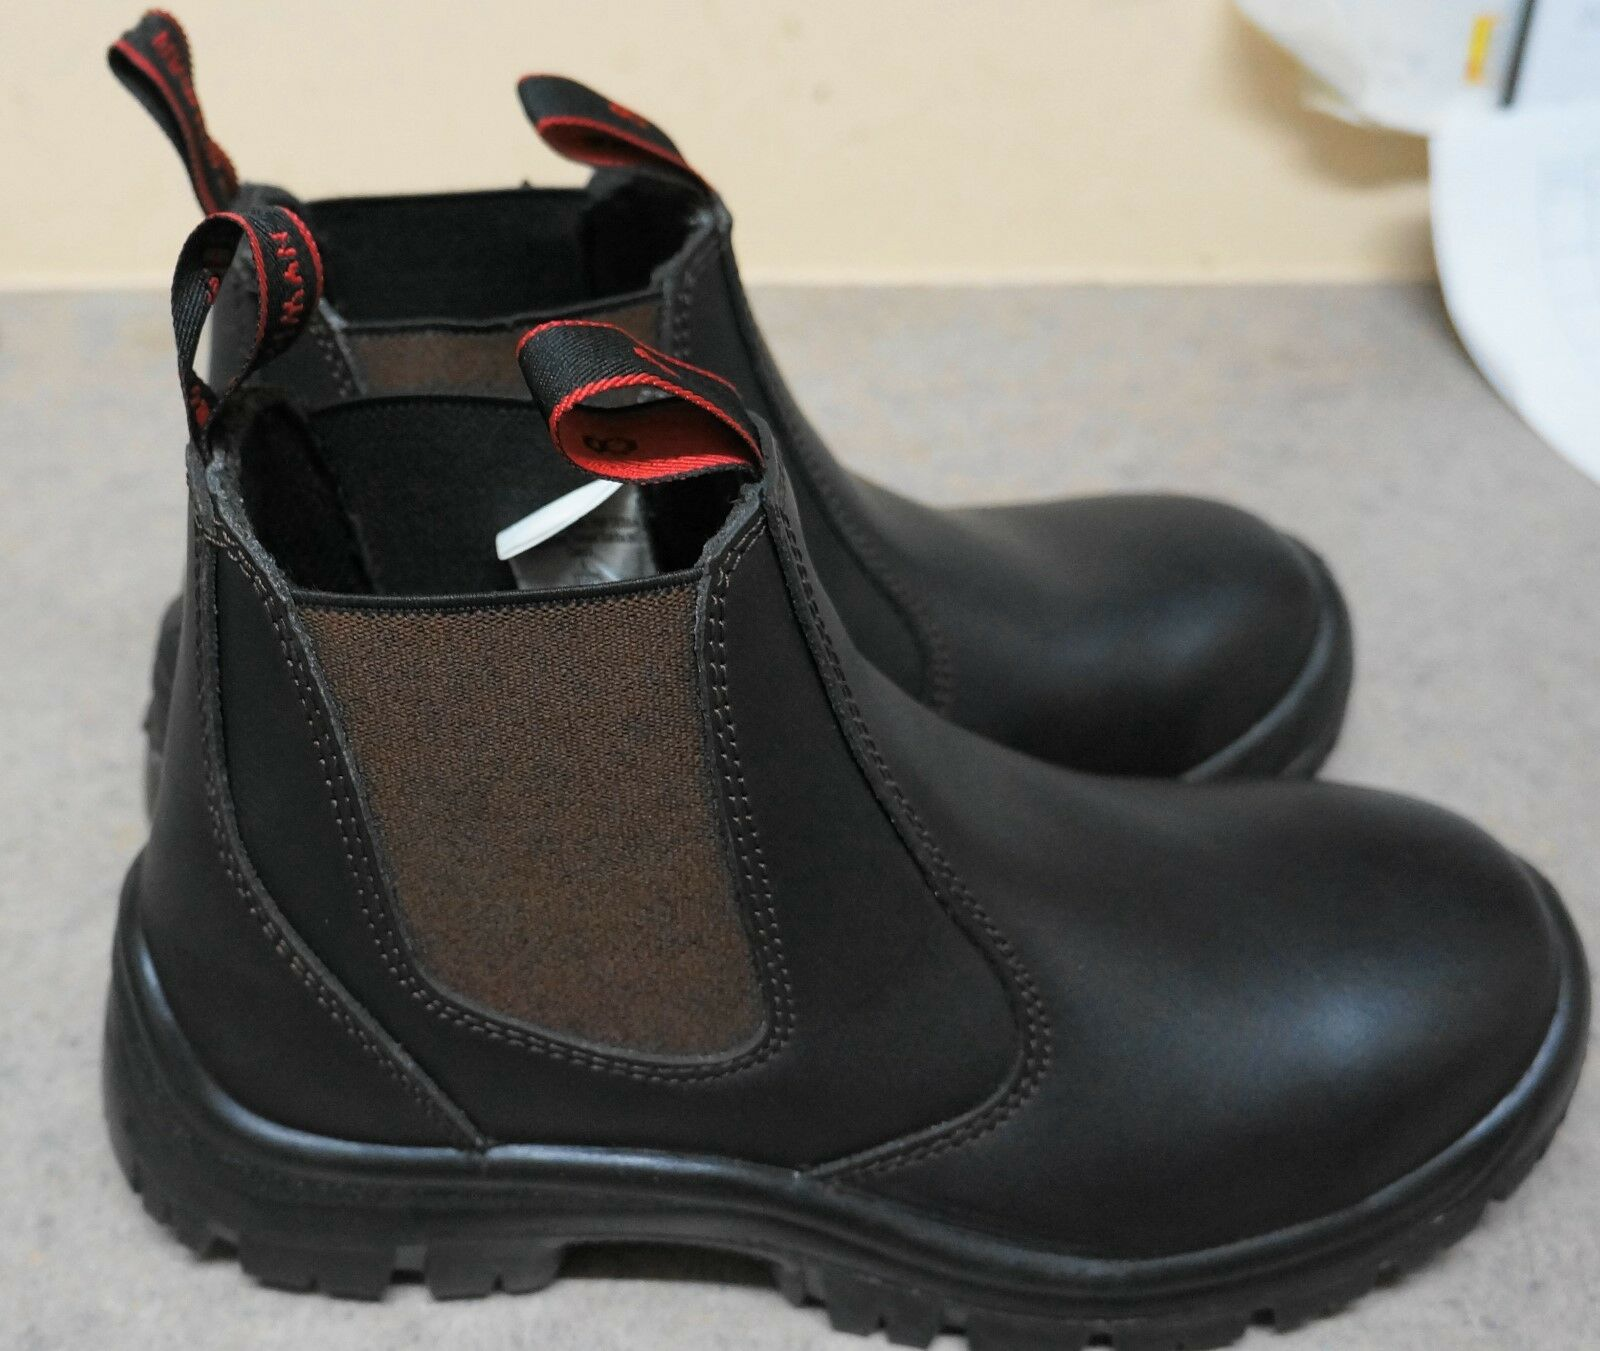 Work Boots Steel Cap Brown Pull On Workboots Brown Cap Safety Boot Steel Toe f34a69